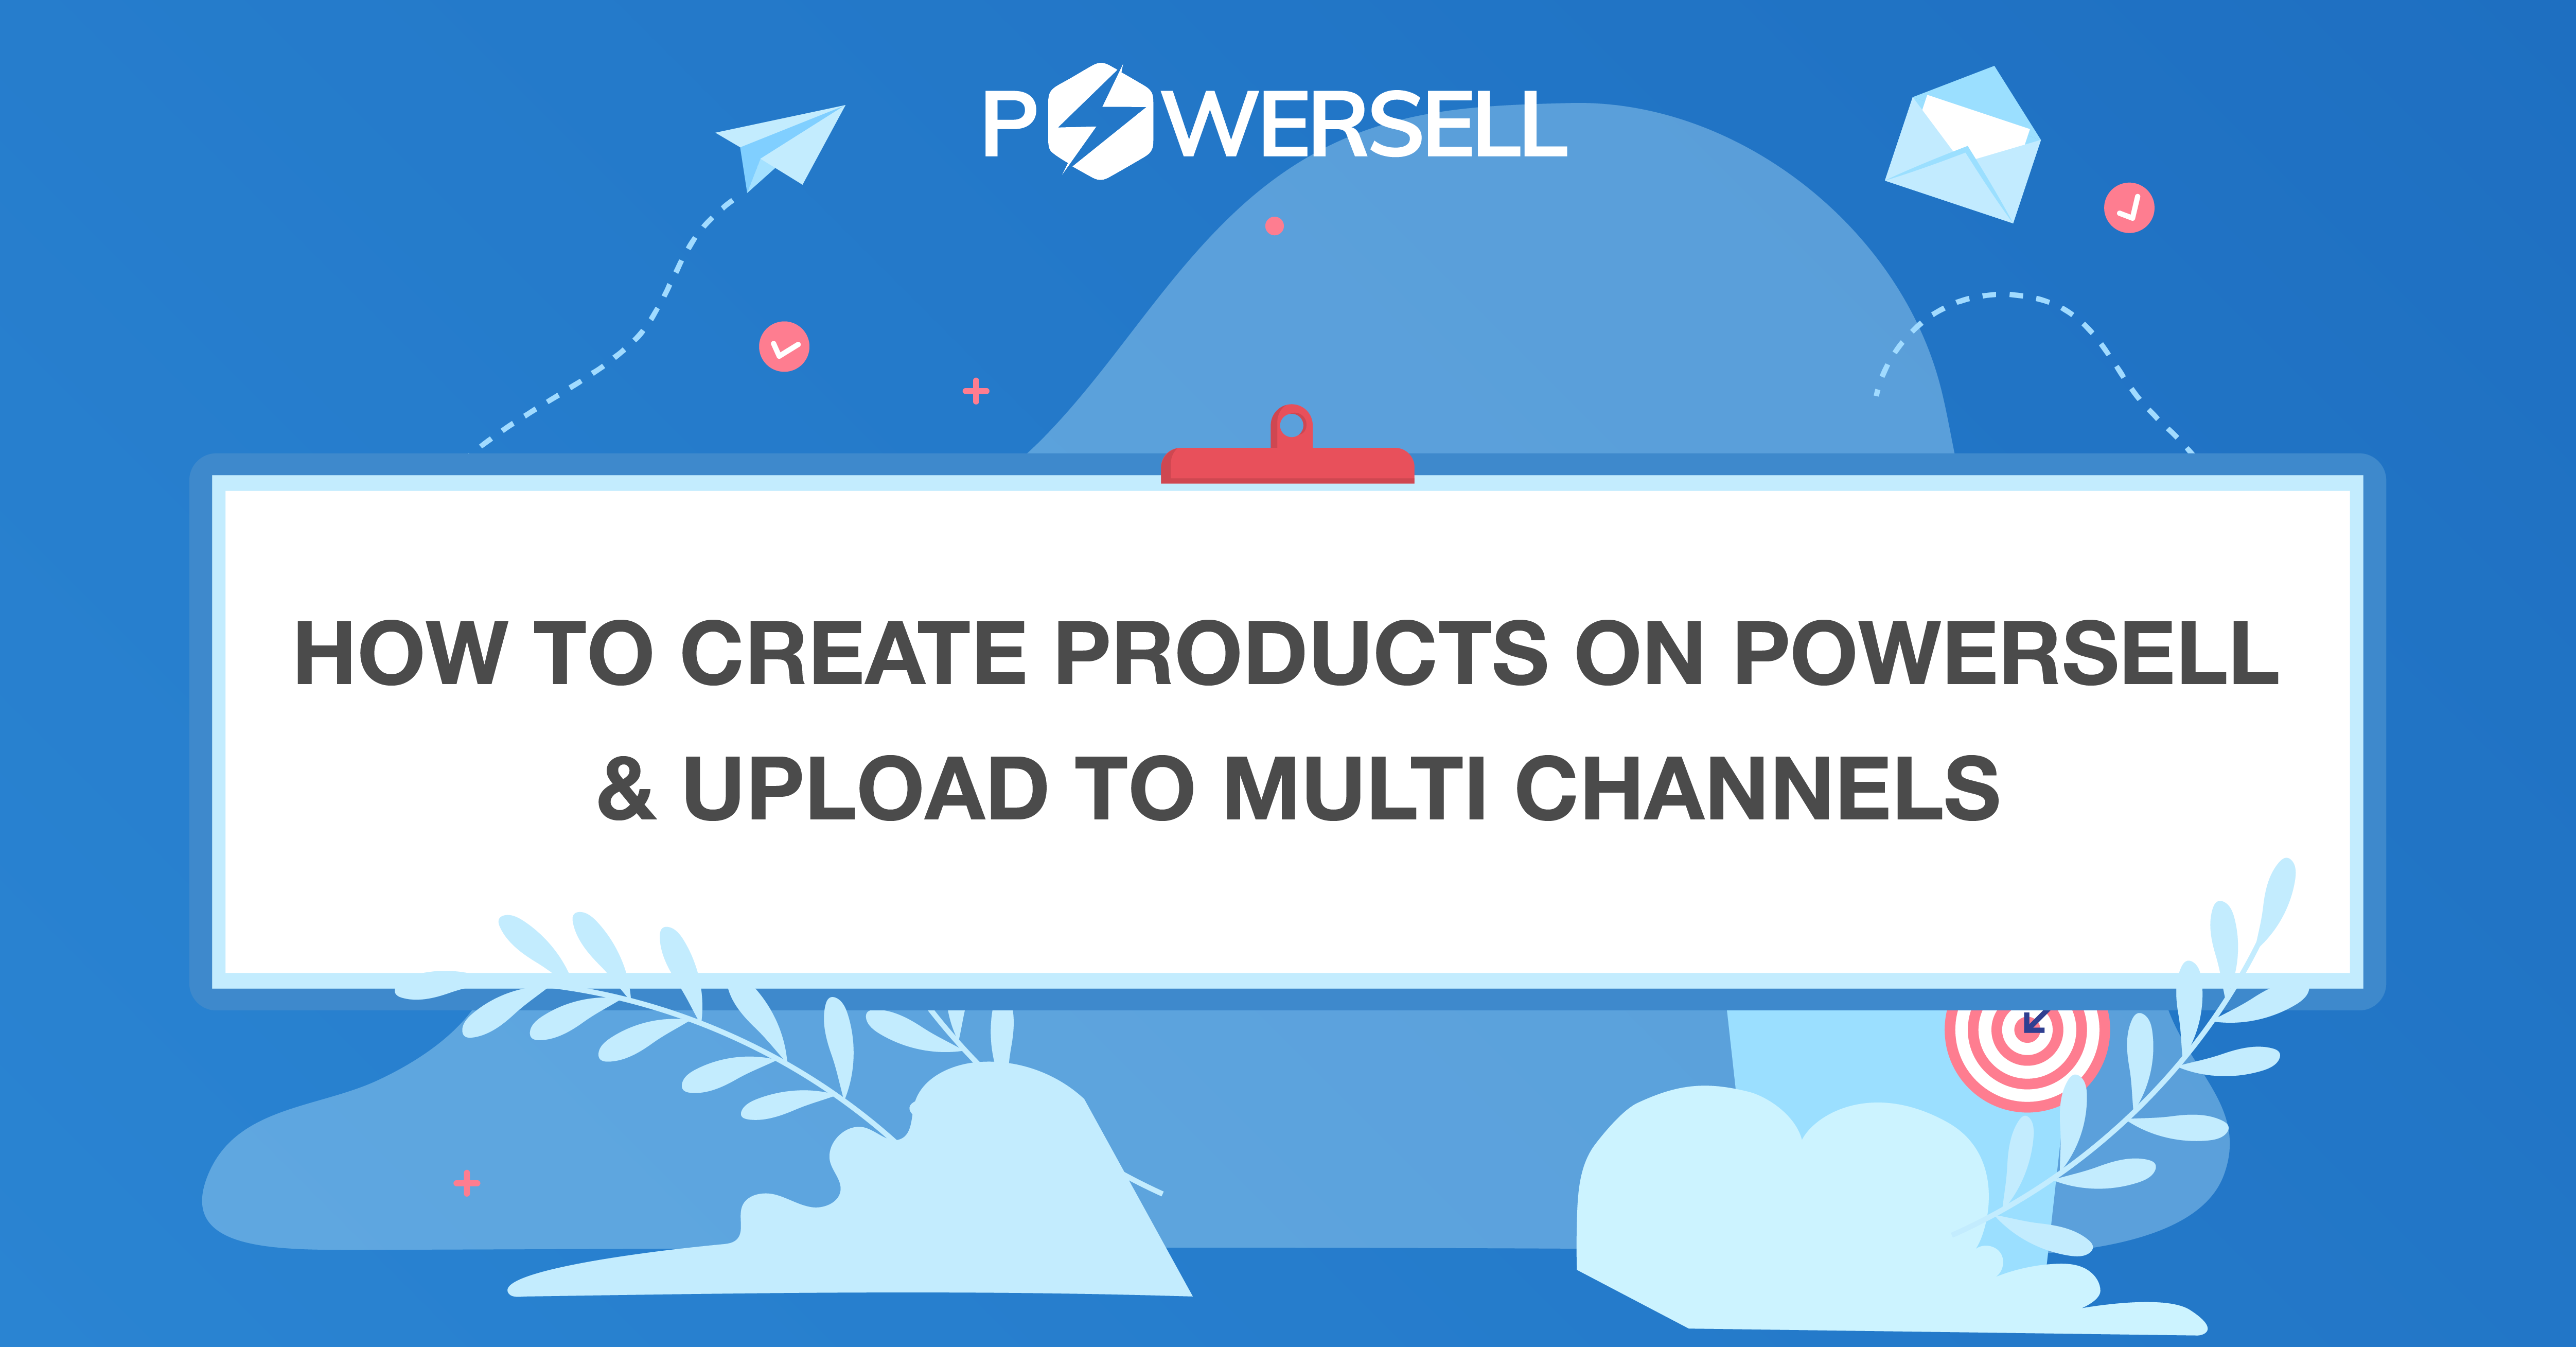 How to create products on PowerSell & upload to multi channels